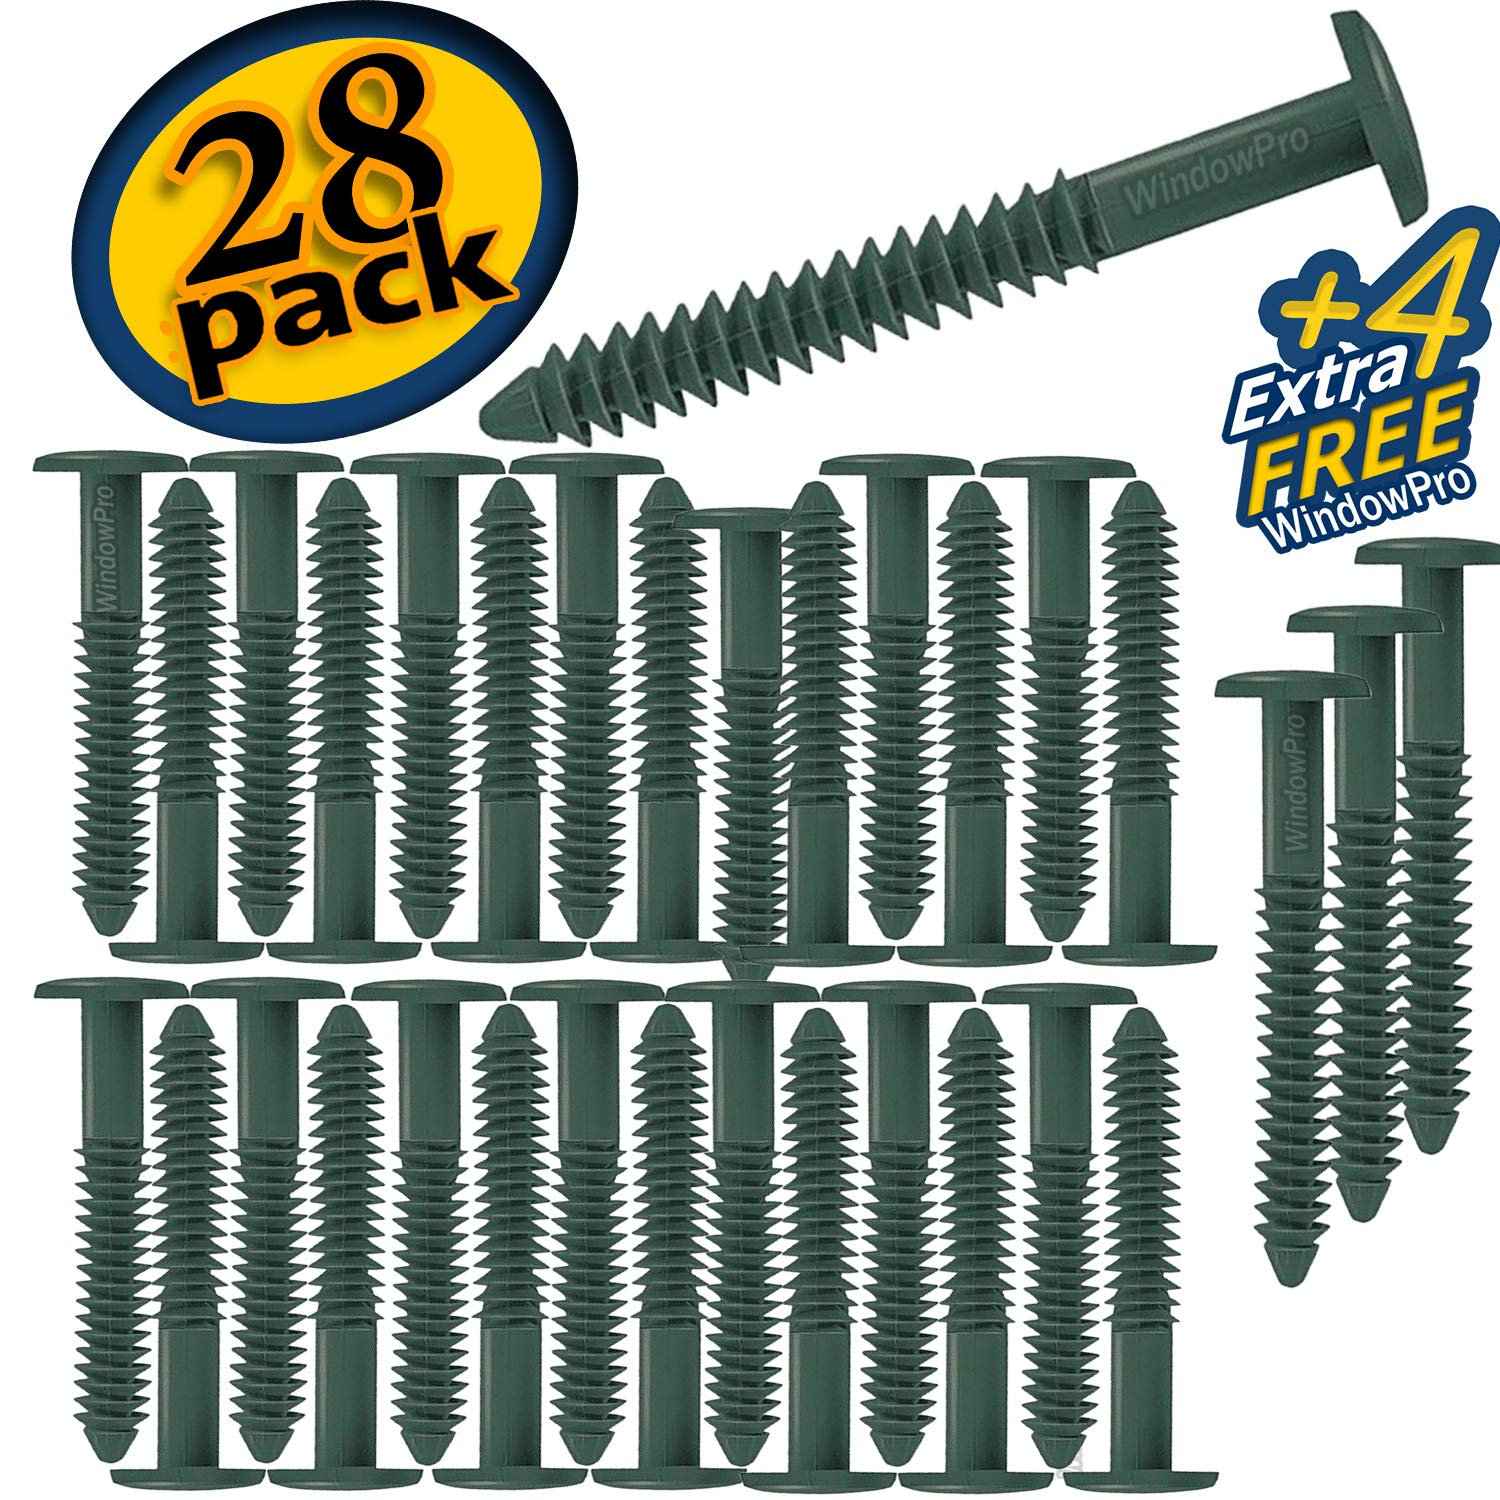 Forest Green Window Shutters Panel Peg Loks 3 inch 12 Pack Buy One Bag of 12 Loks and Get 4 Extra Shutter Peg Loks Free